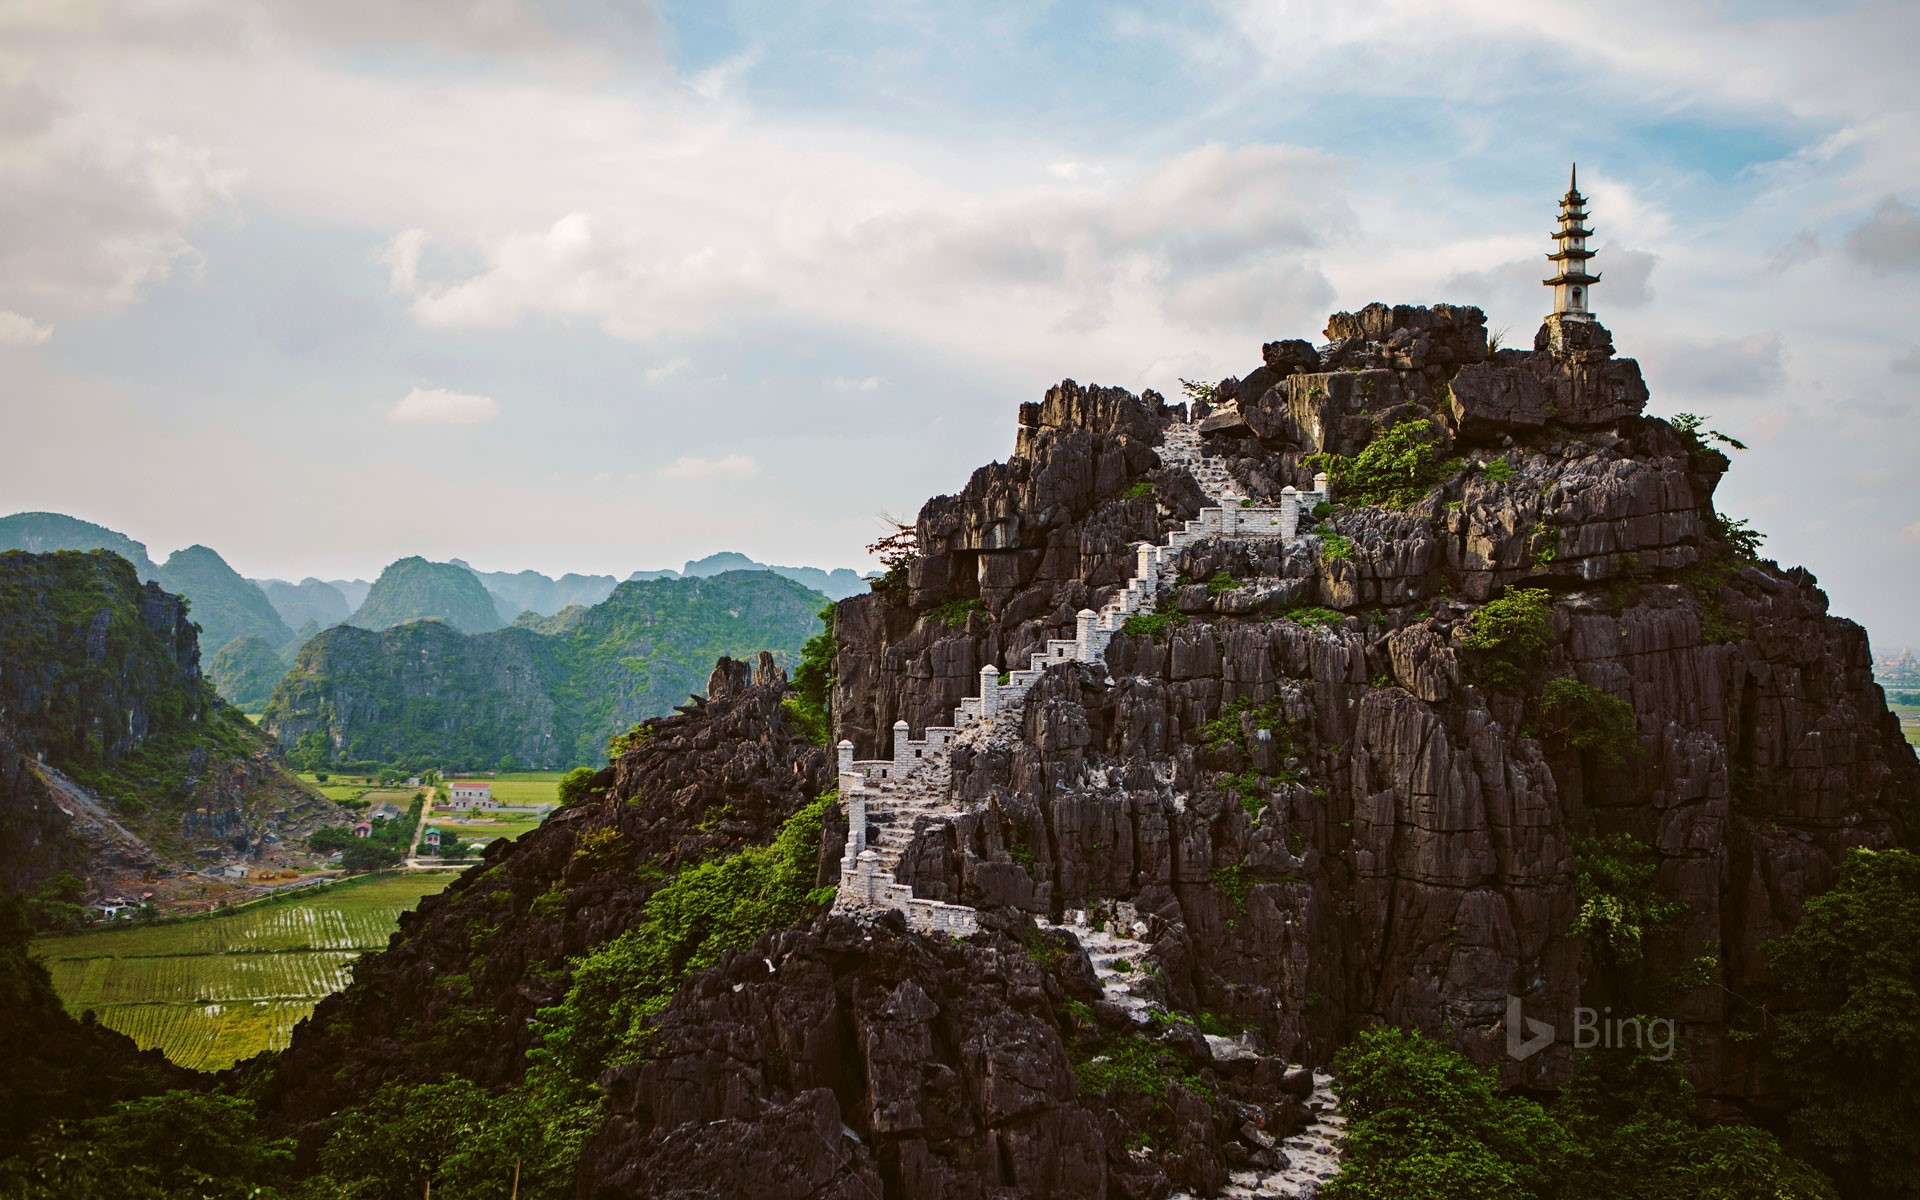 Mua Caves in the Ninh Bình province of Vietnam